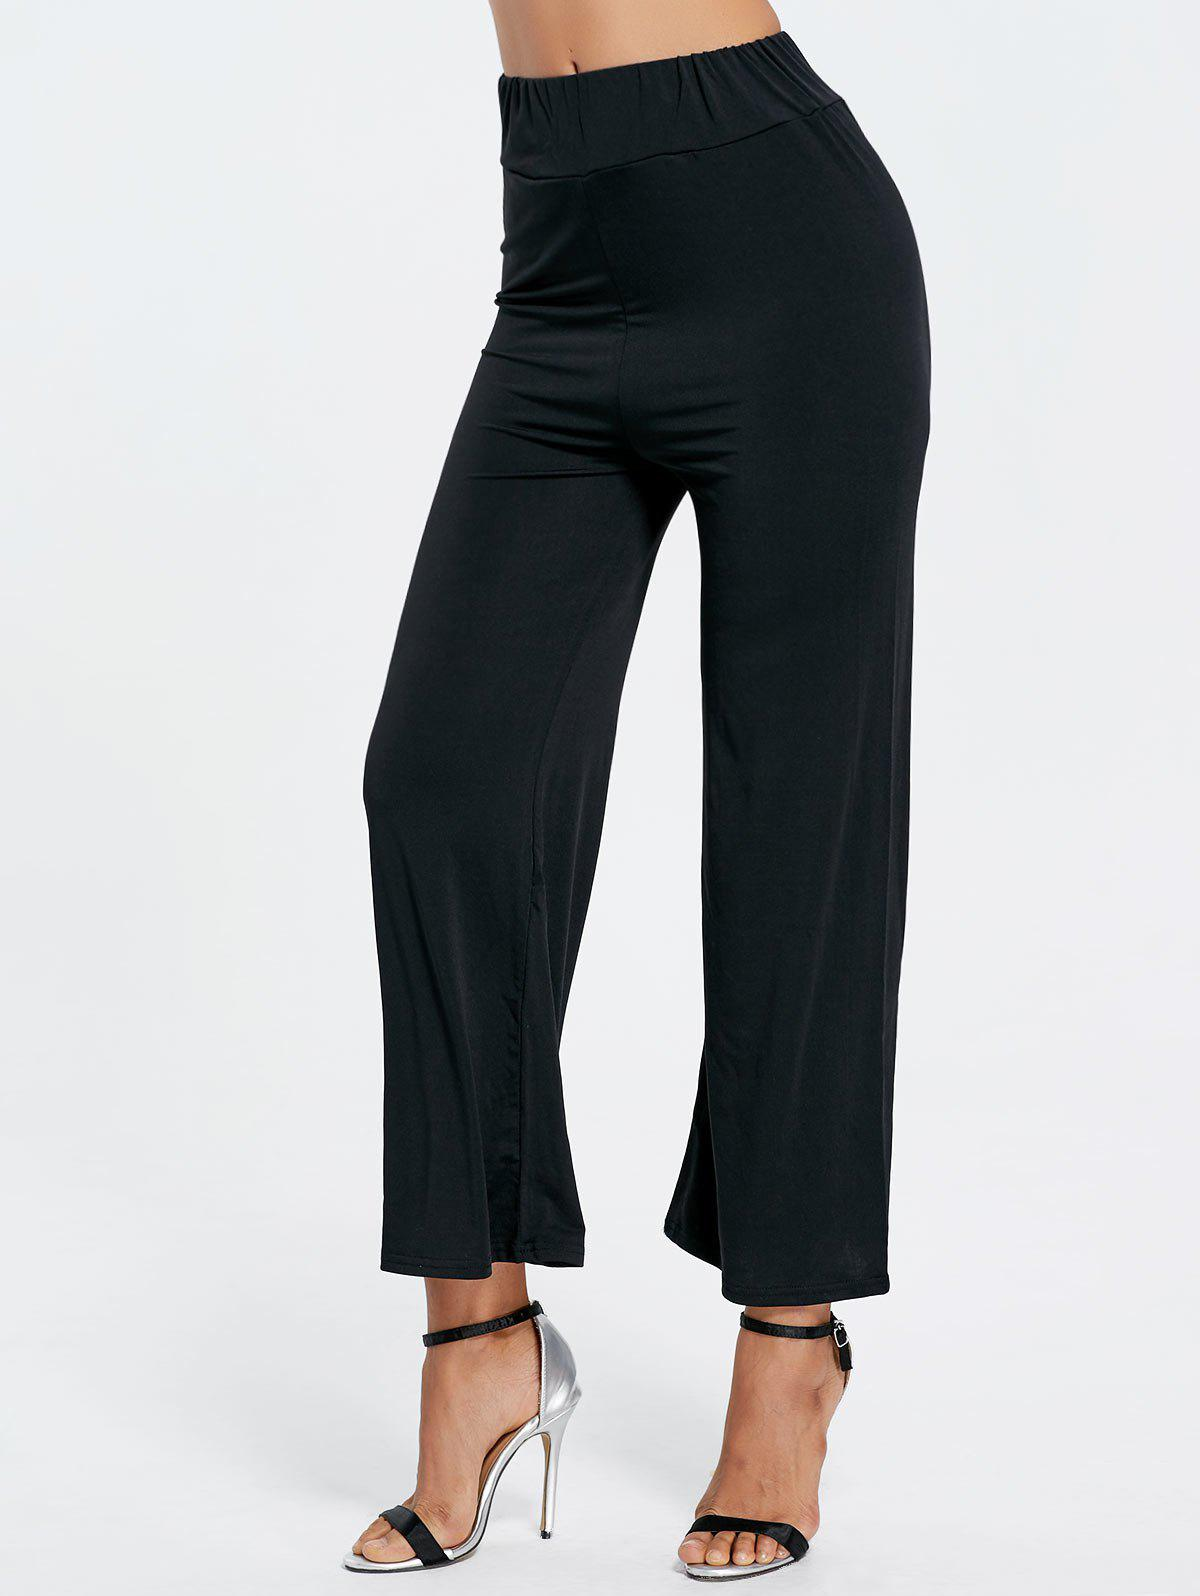 New High Waisted Ninth Wide Leg Pants